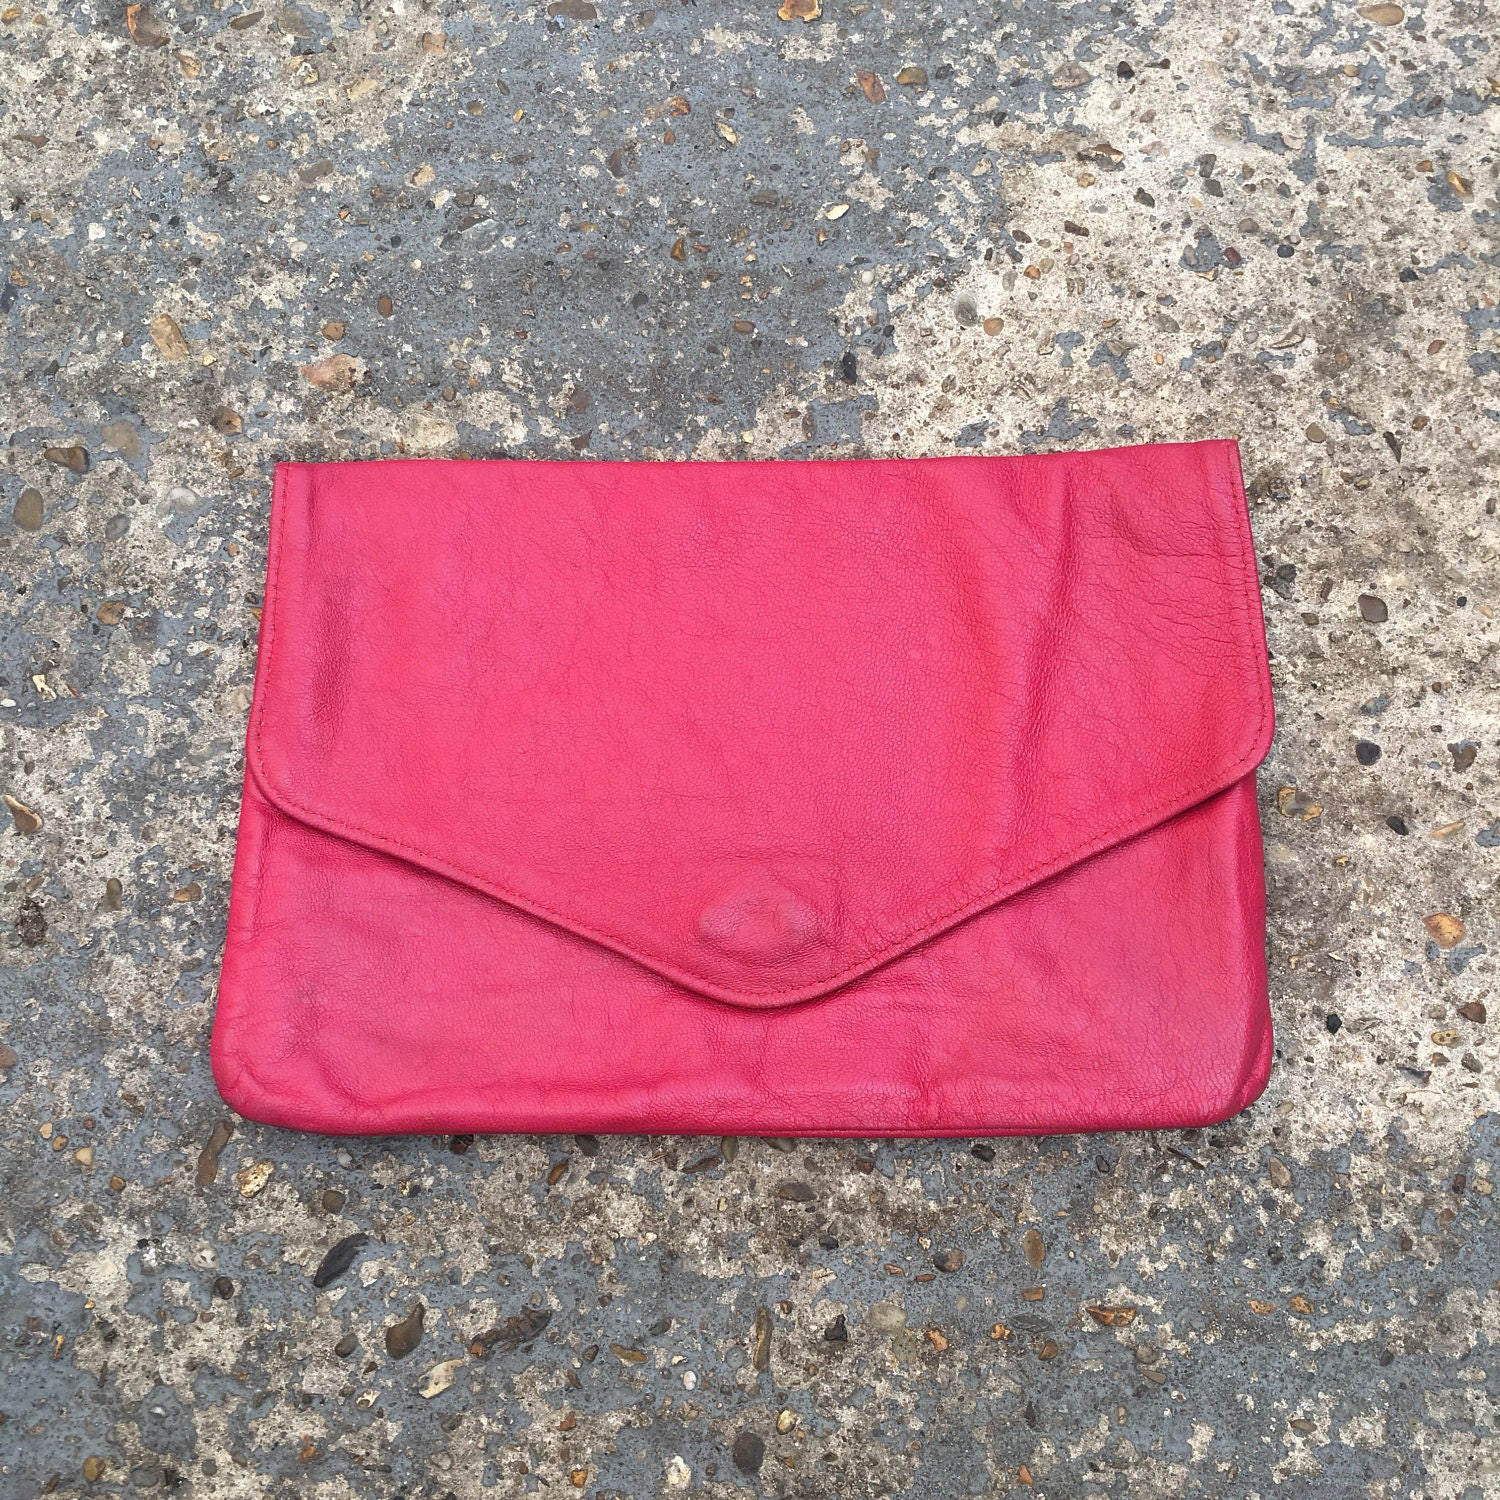 Pink leather clutch purse  soft real leather clutch  bright pink leather clutch bag  supple pink leather bag  pink 80s evening bag